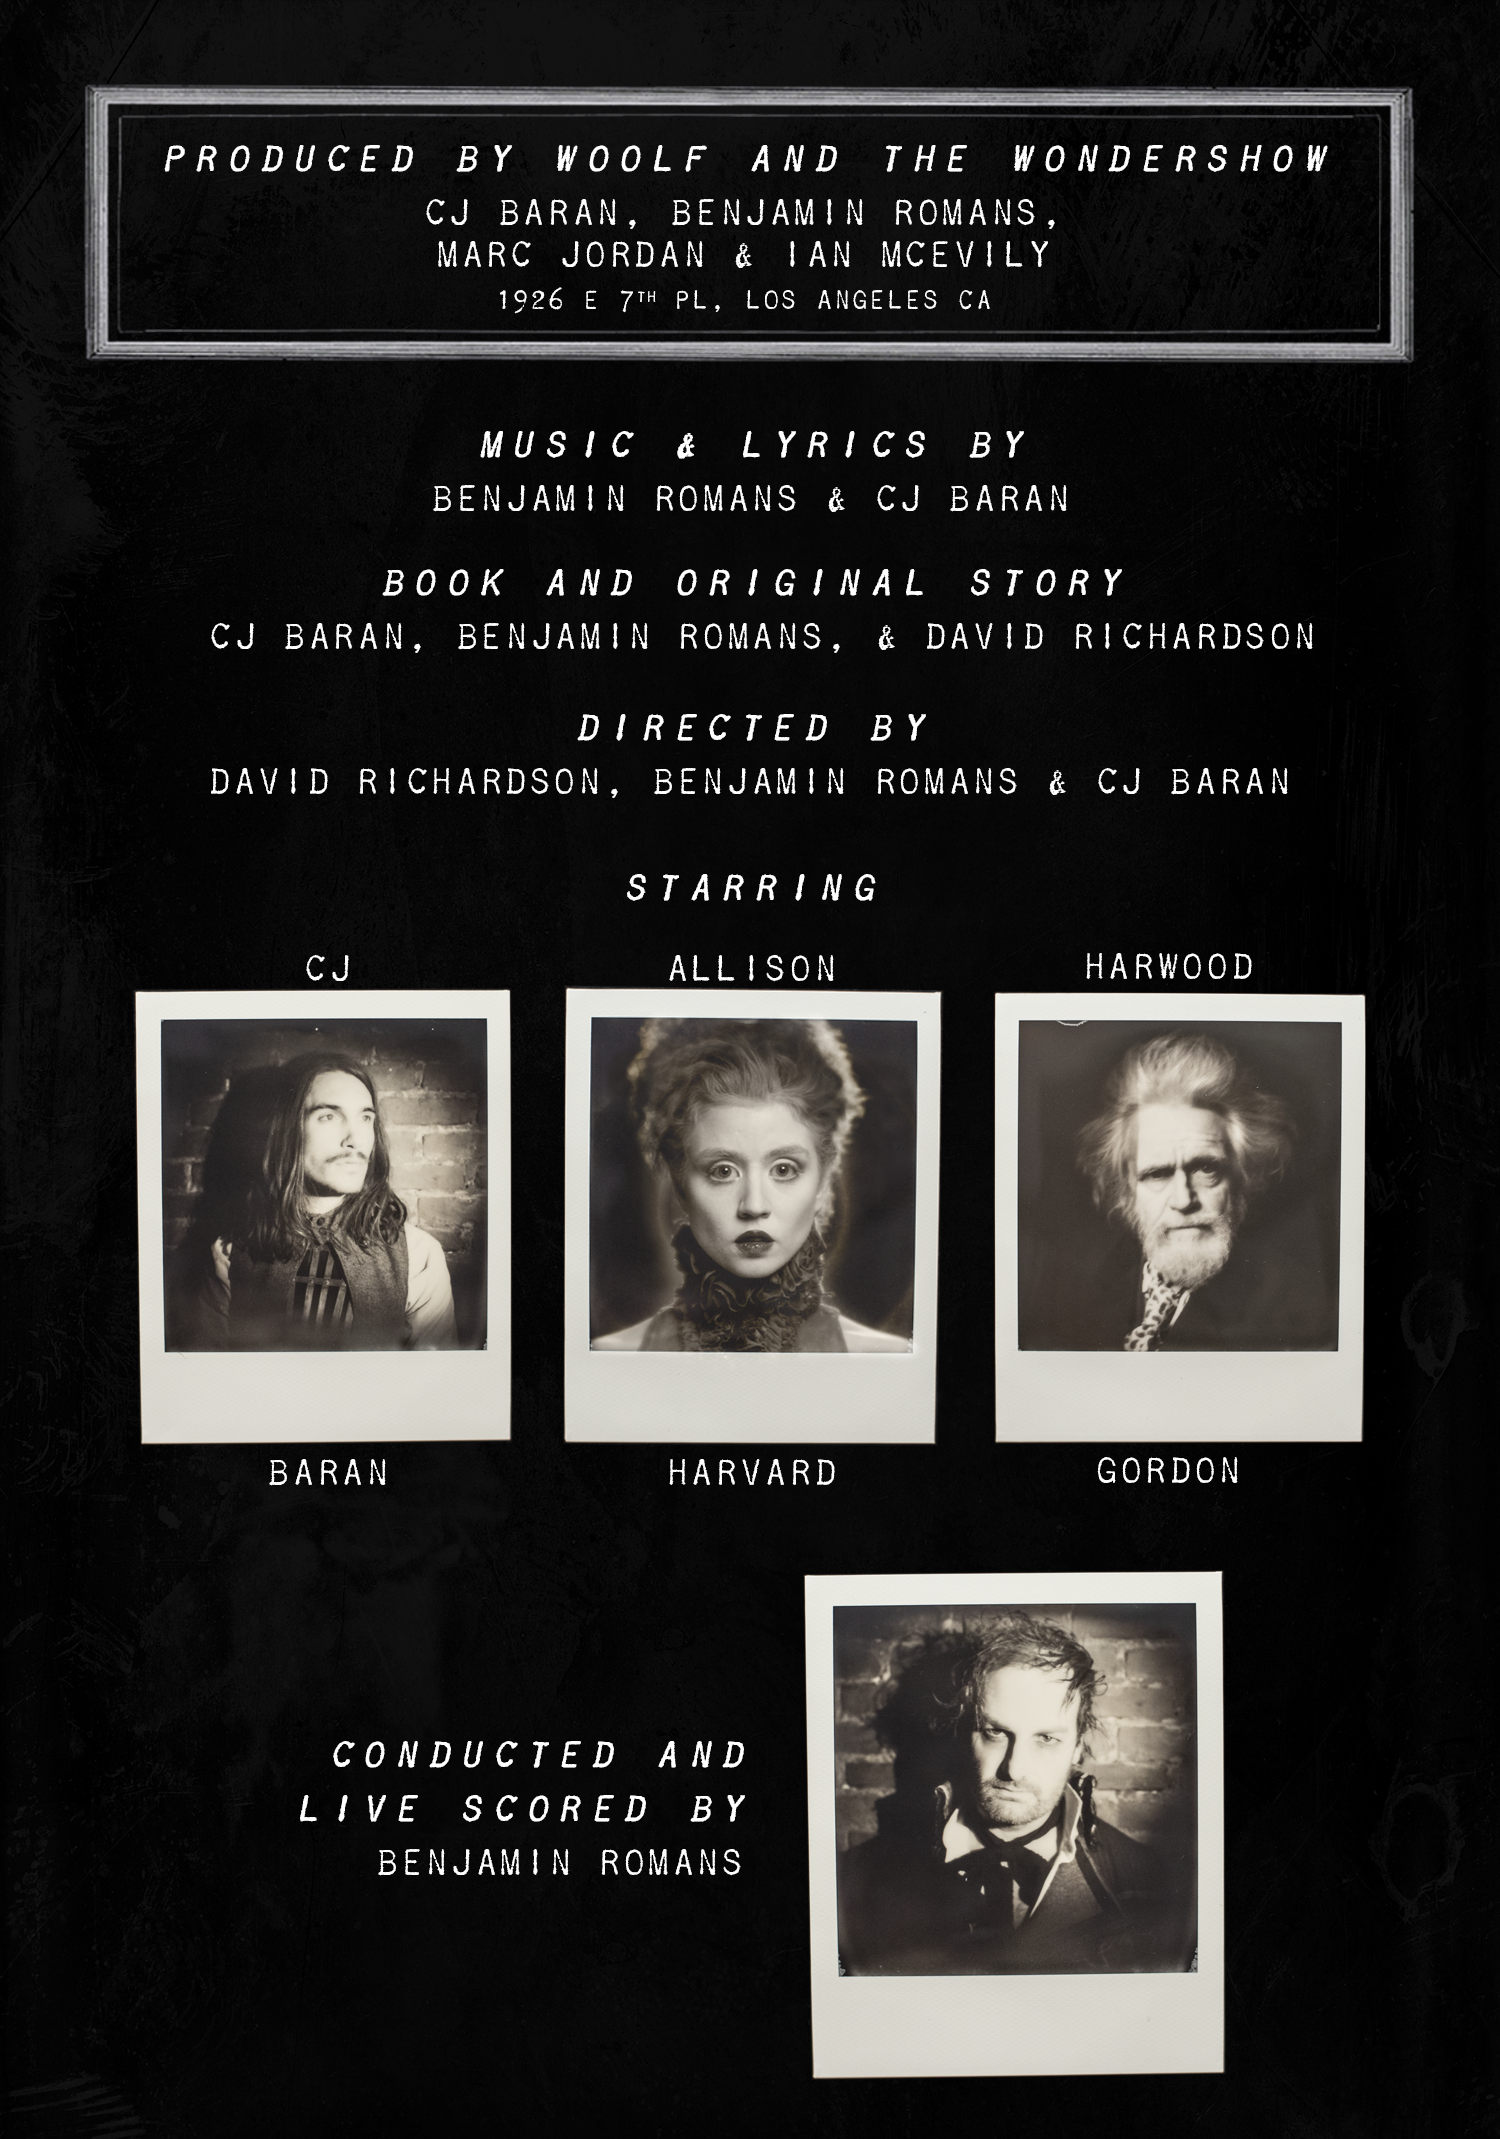 Woolf and the Wondershow - Program Page 2 - Credits and Starring